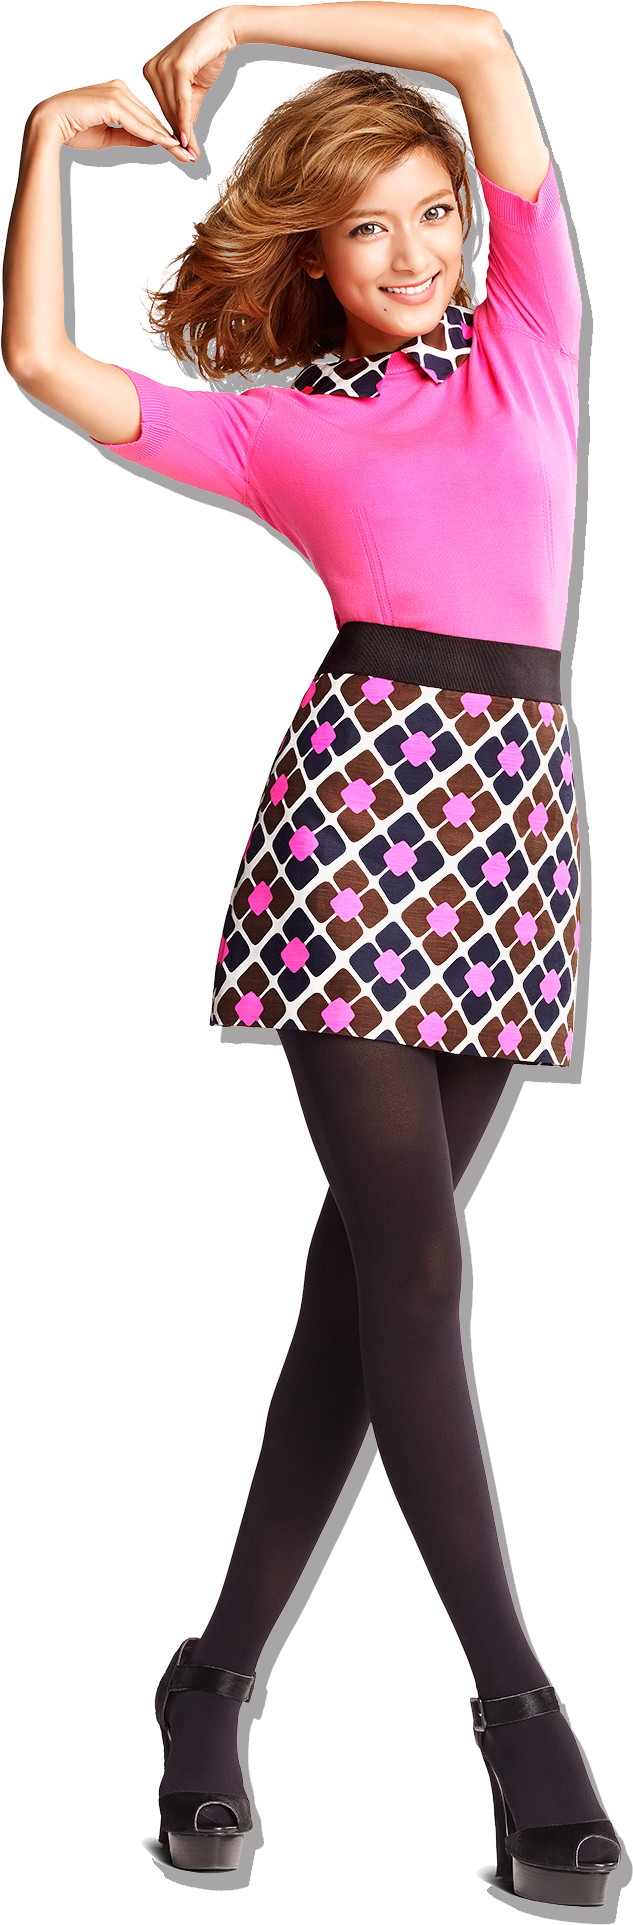 rola sexy model png